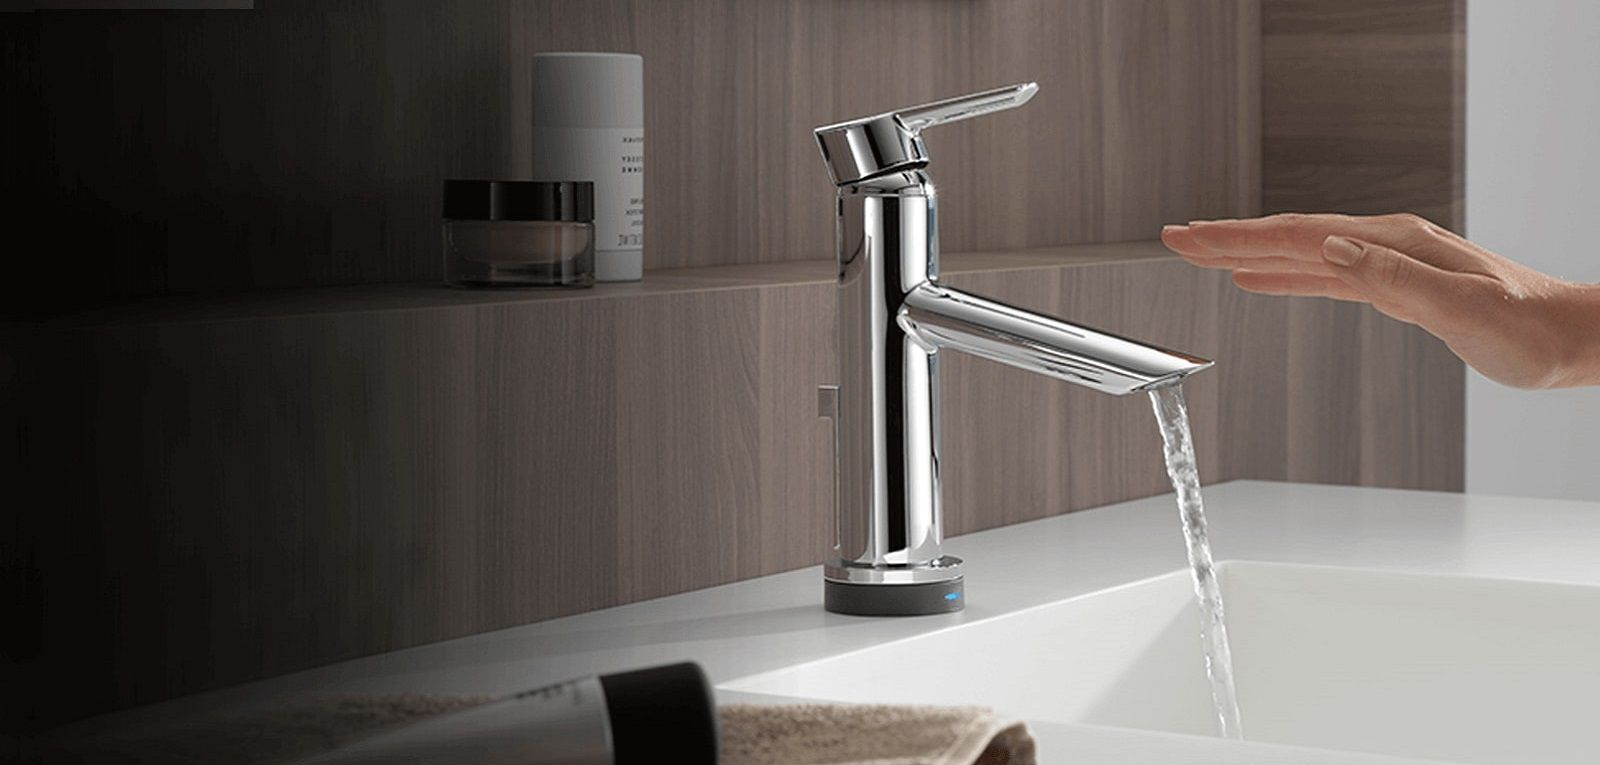 Bathroom Accessories Faucets Fittings And Sink Taps Brand In